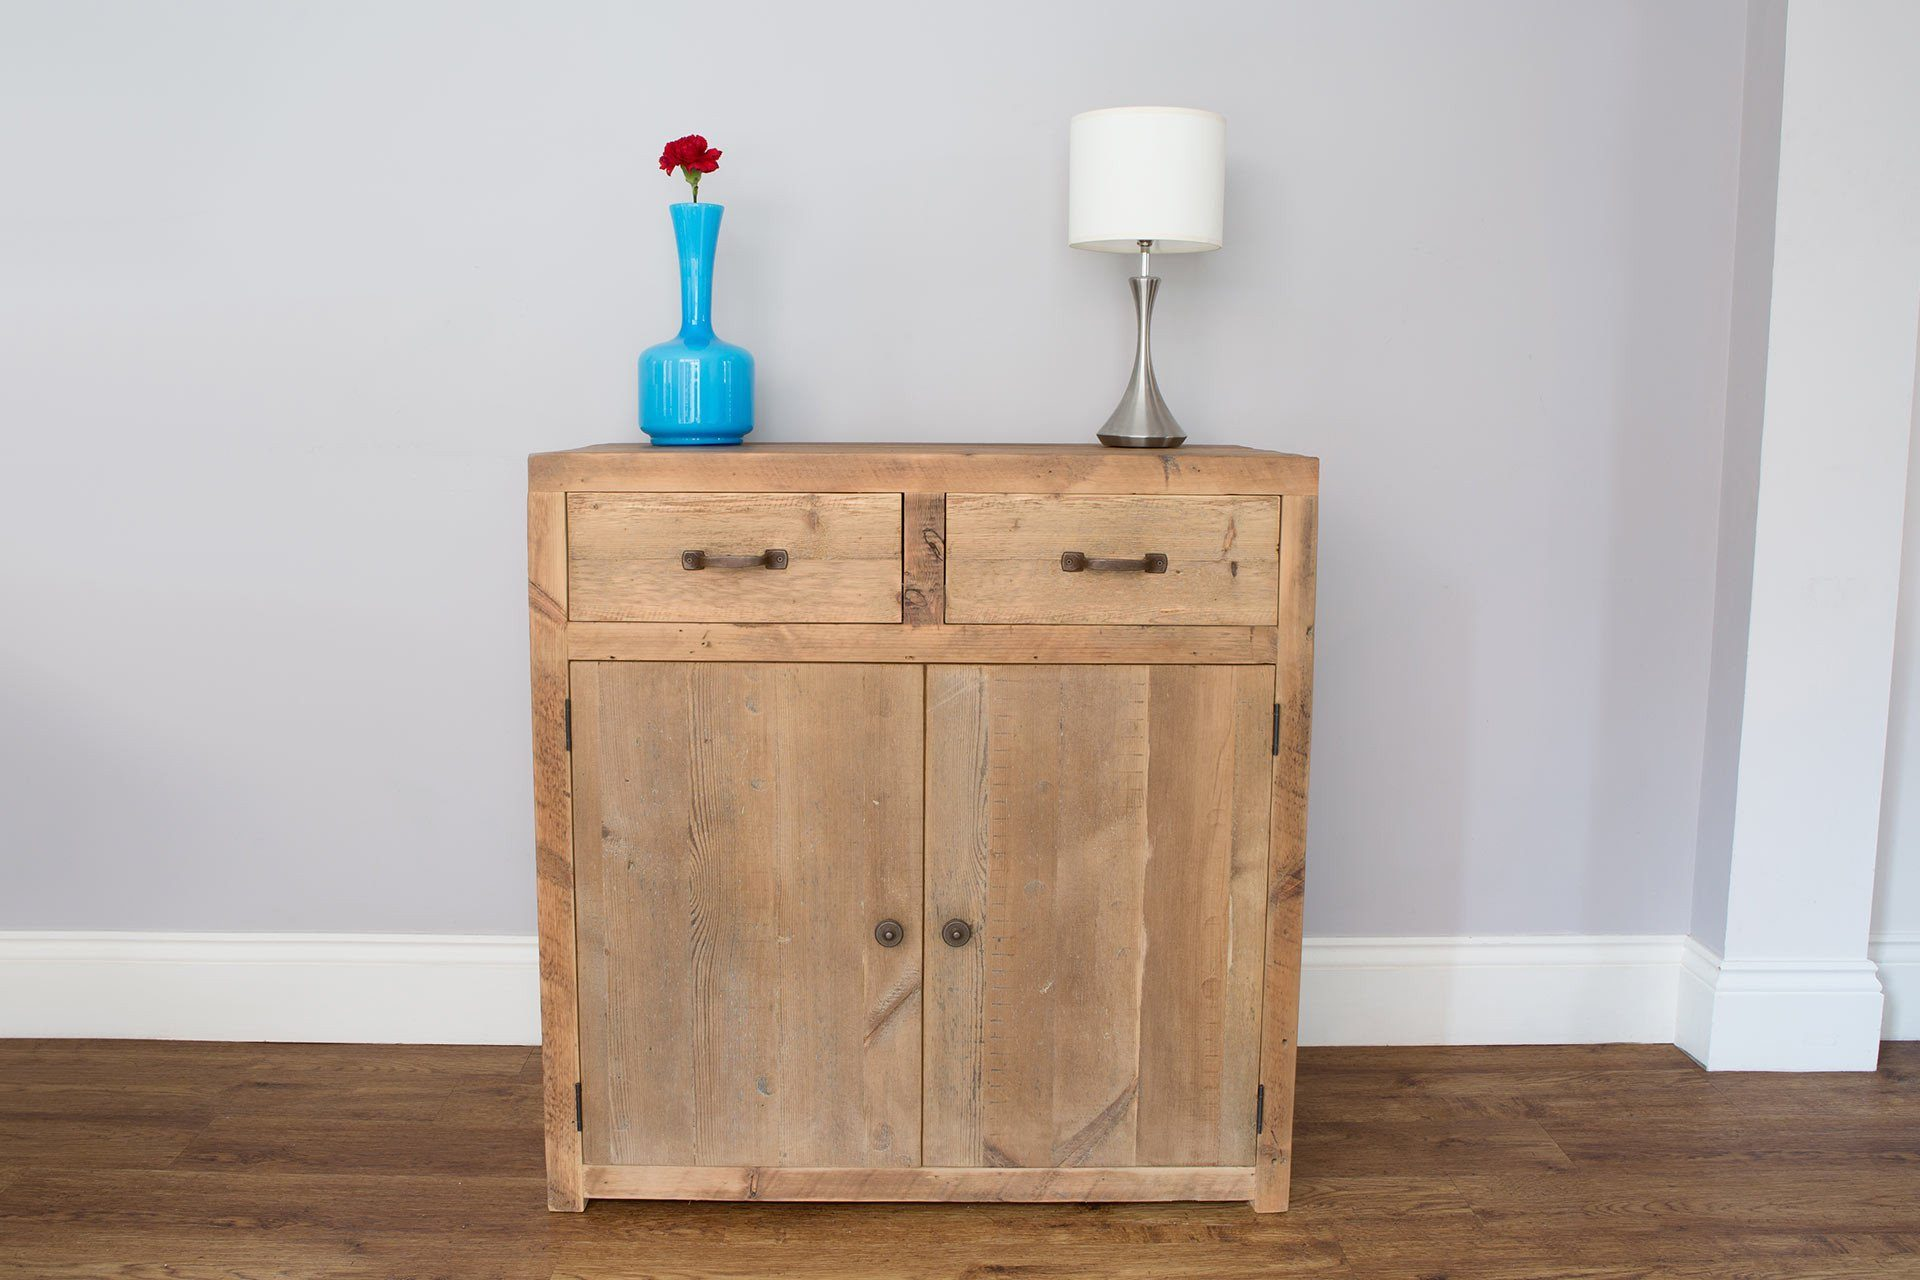 Natural 90.5cm Sideboard With Antique Handles & Knobs